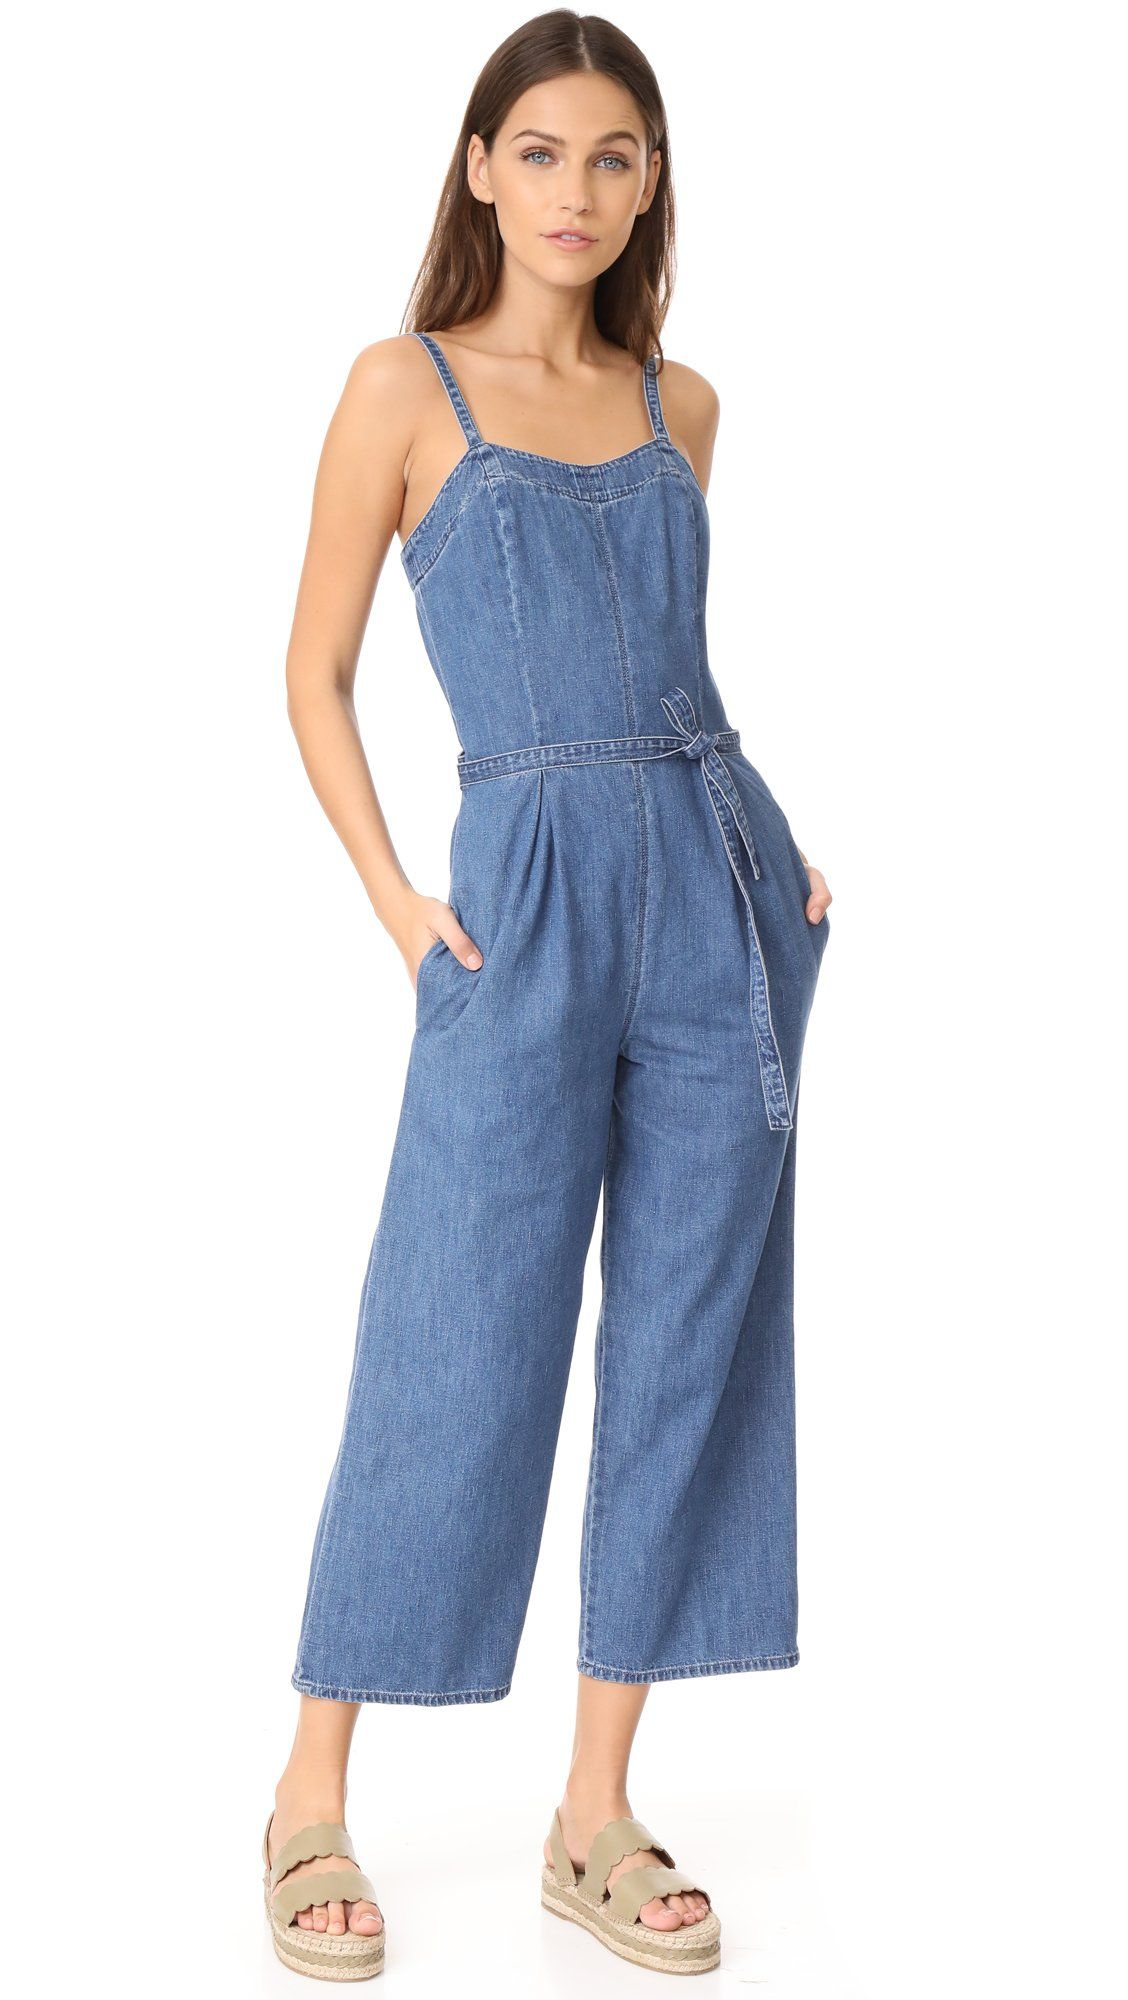 Ag adriano goldschmied womenus gisele jumpsuit atlas blue small